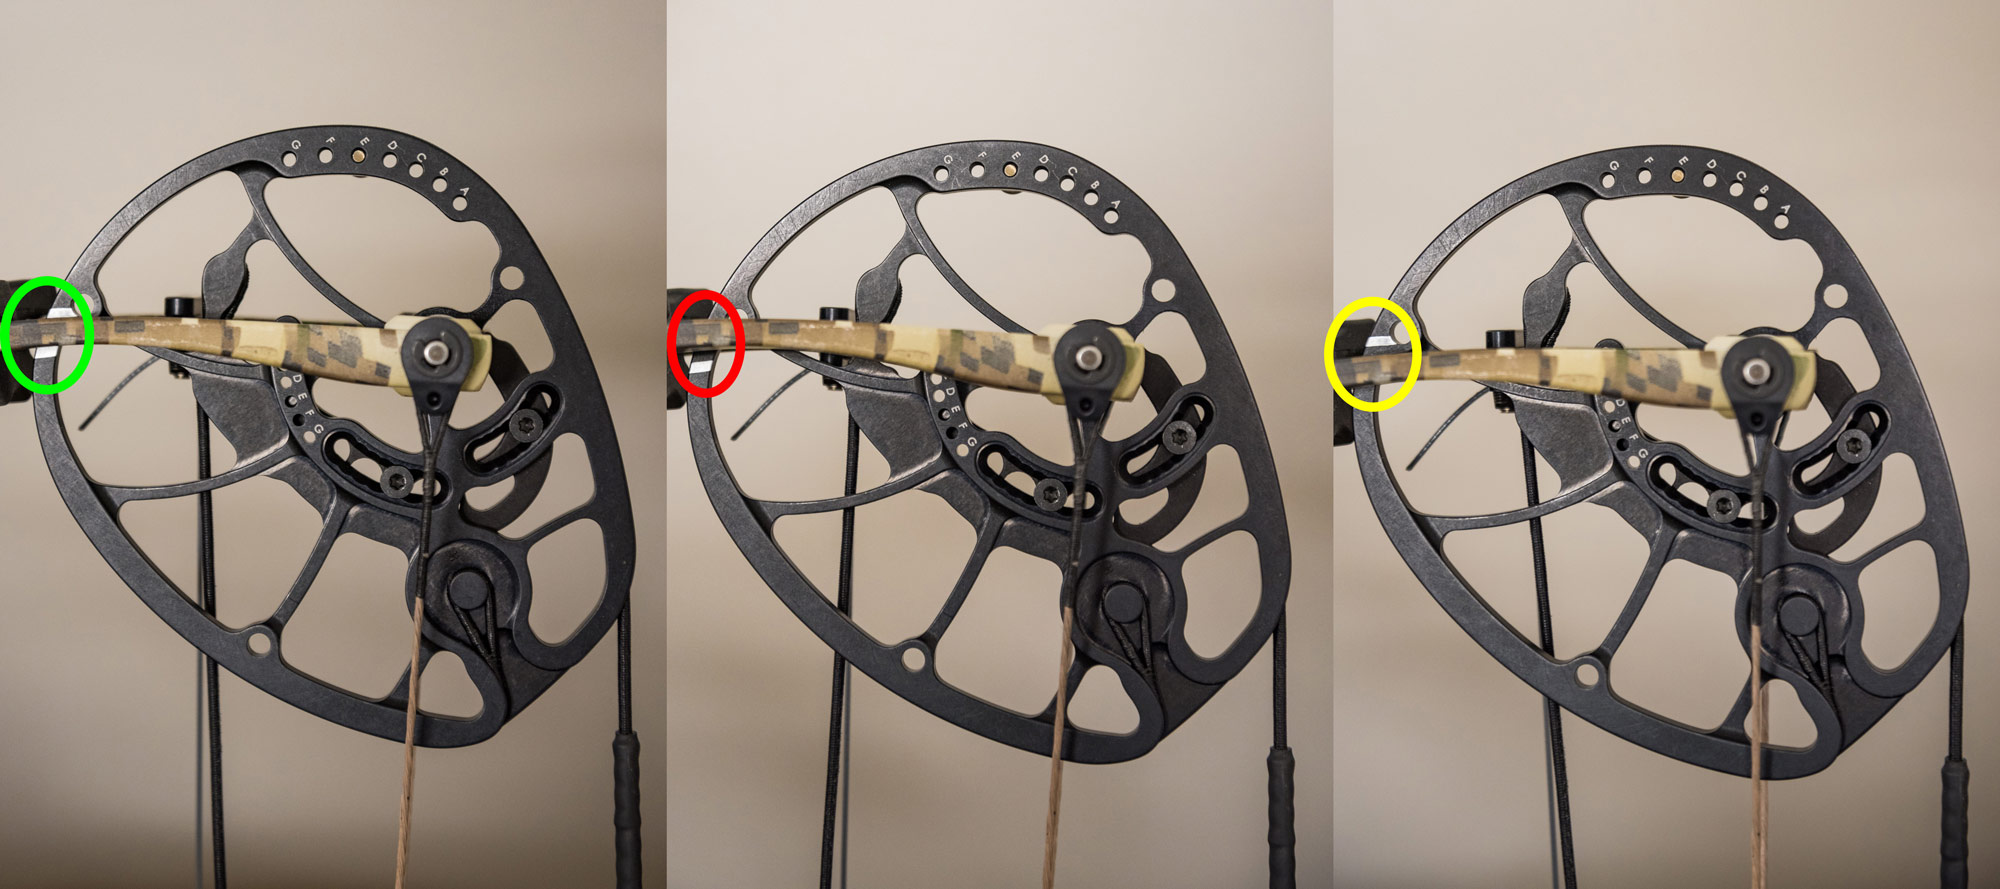 Marking the cams of your bow to confirm cosistency.